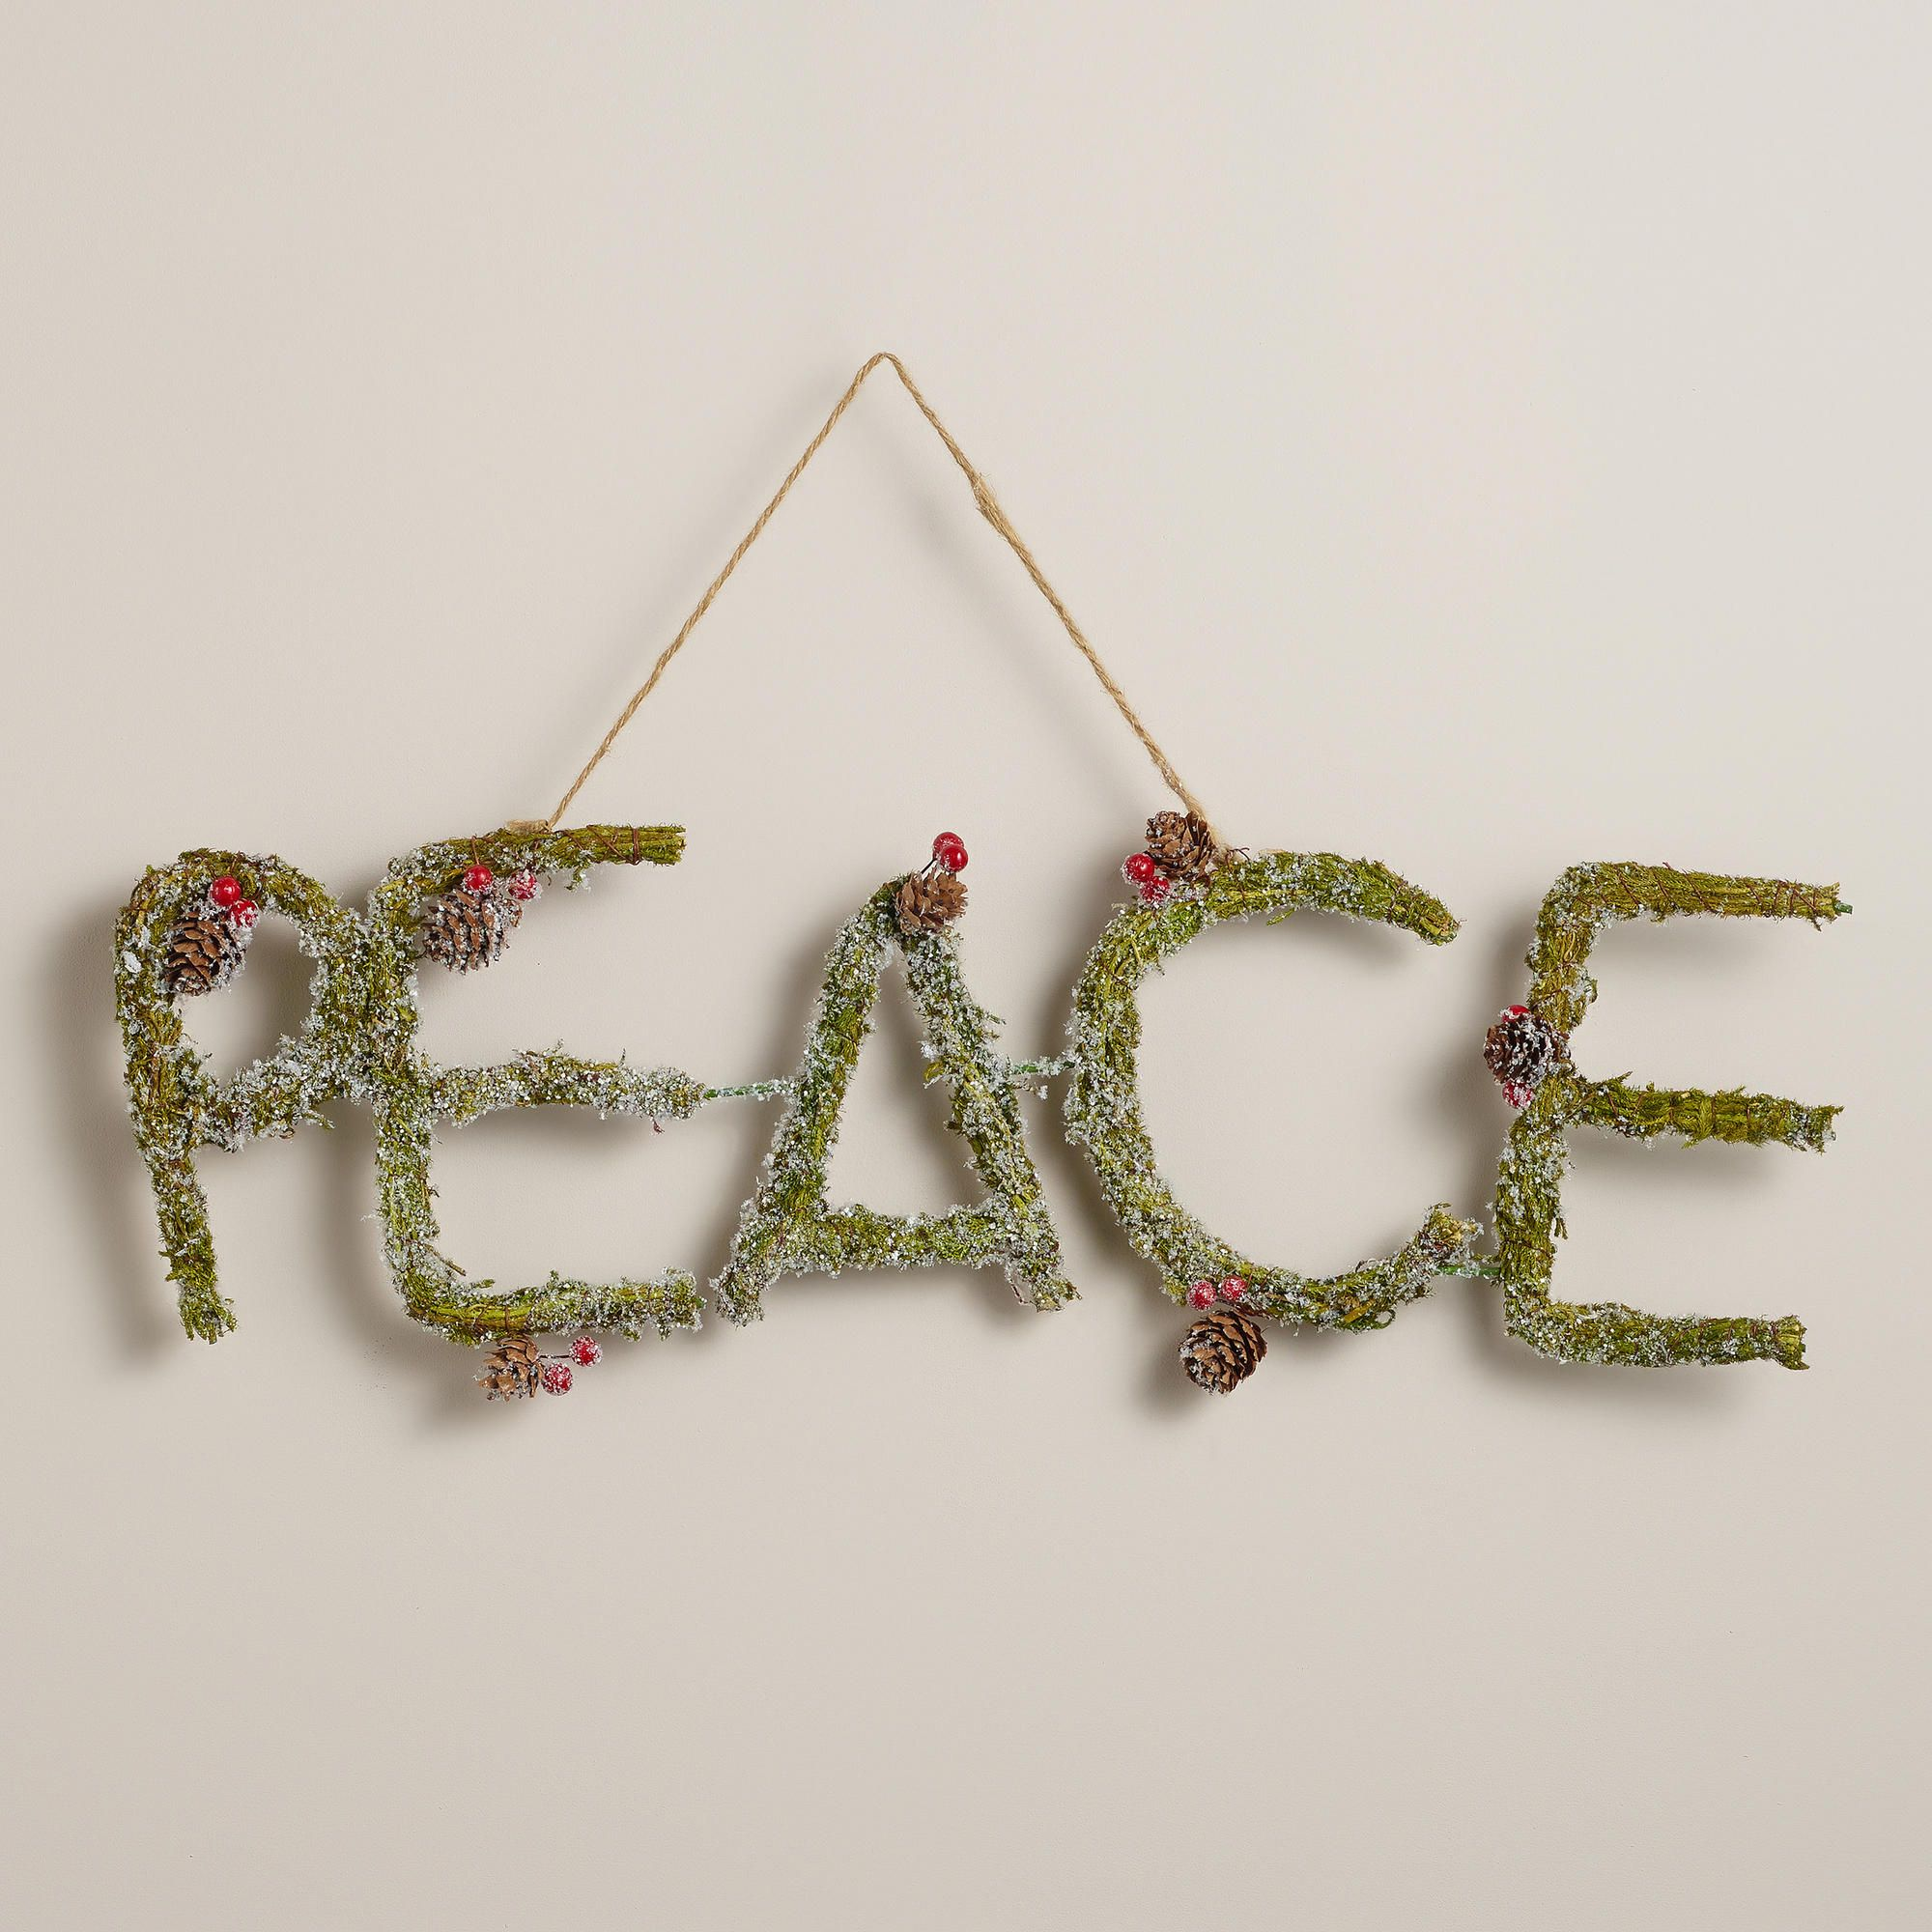 Mossy Pinecone Peace Wall Decor | Pinecone and Christmas decor